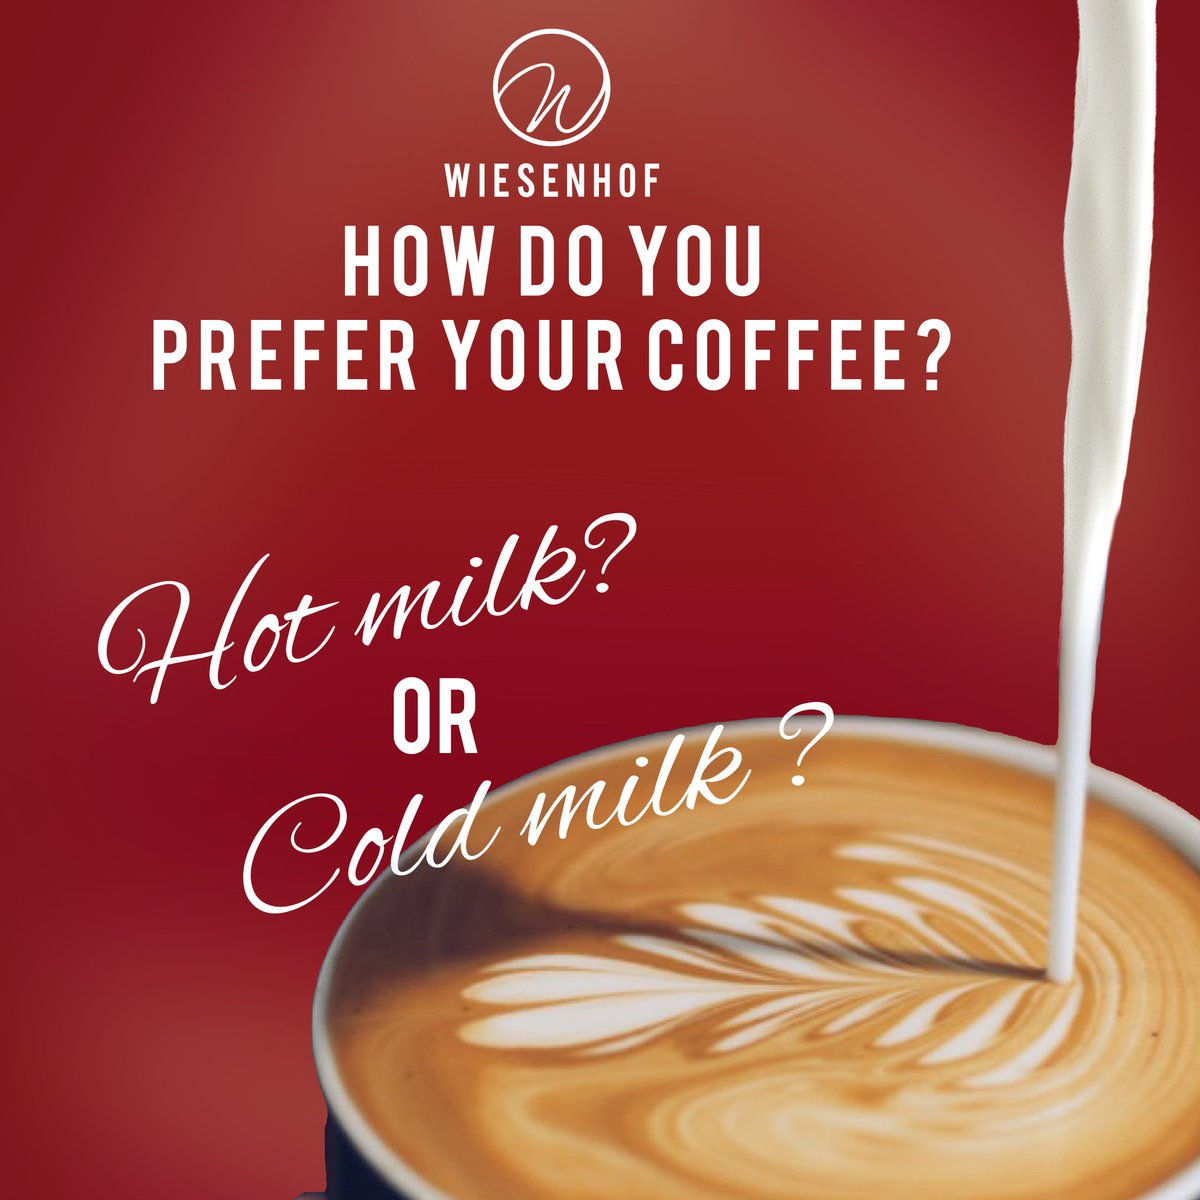 Hot milk or cold milk?  #bestcoffeeinSA #coffeelover #cafe #food #love #roastery #wiesenhof #wiesenhoffranchise #wiesenhofcoffee #bestcoffee